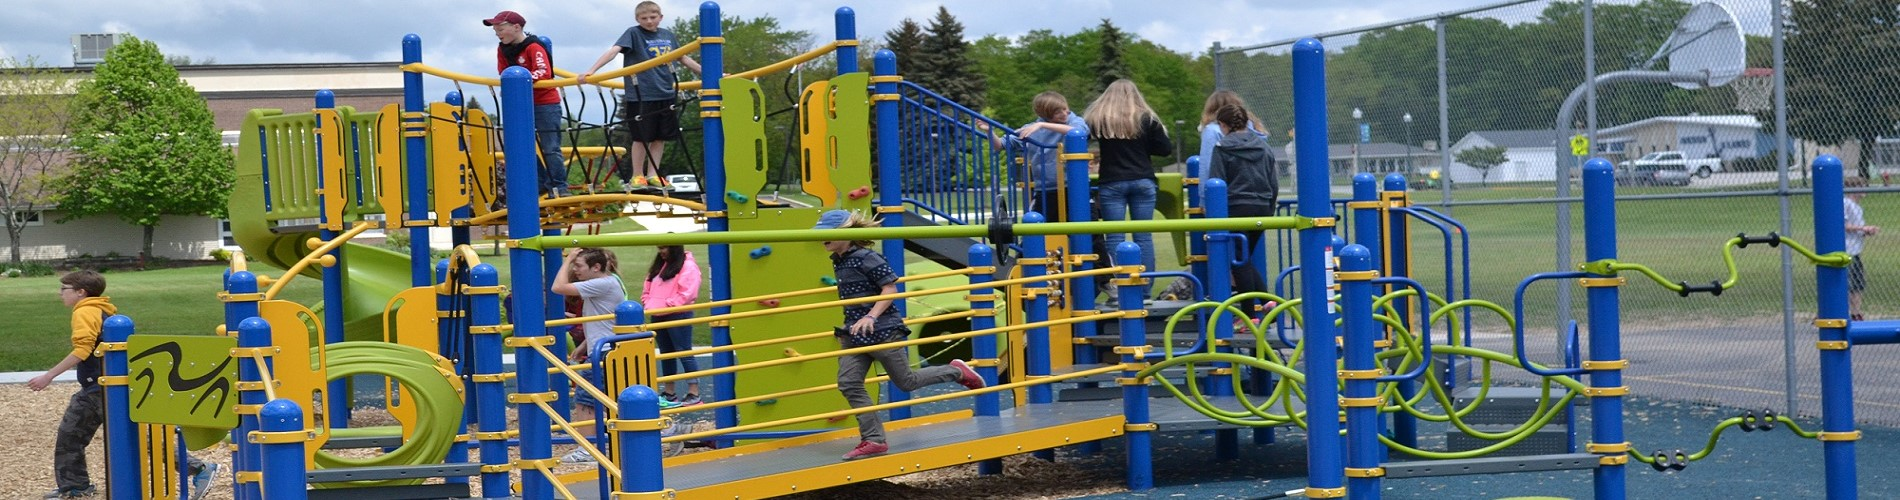 Playground in use